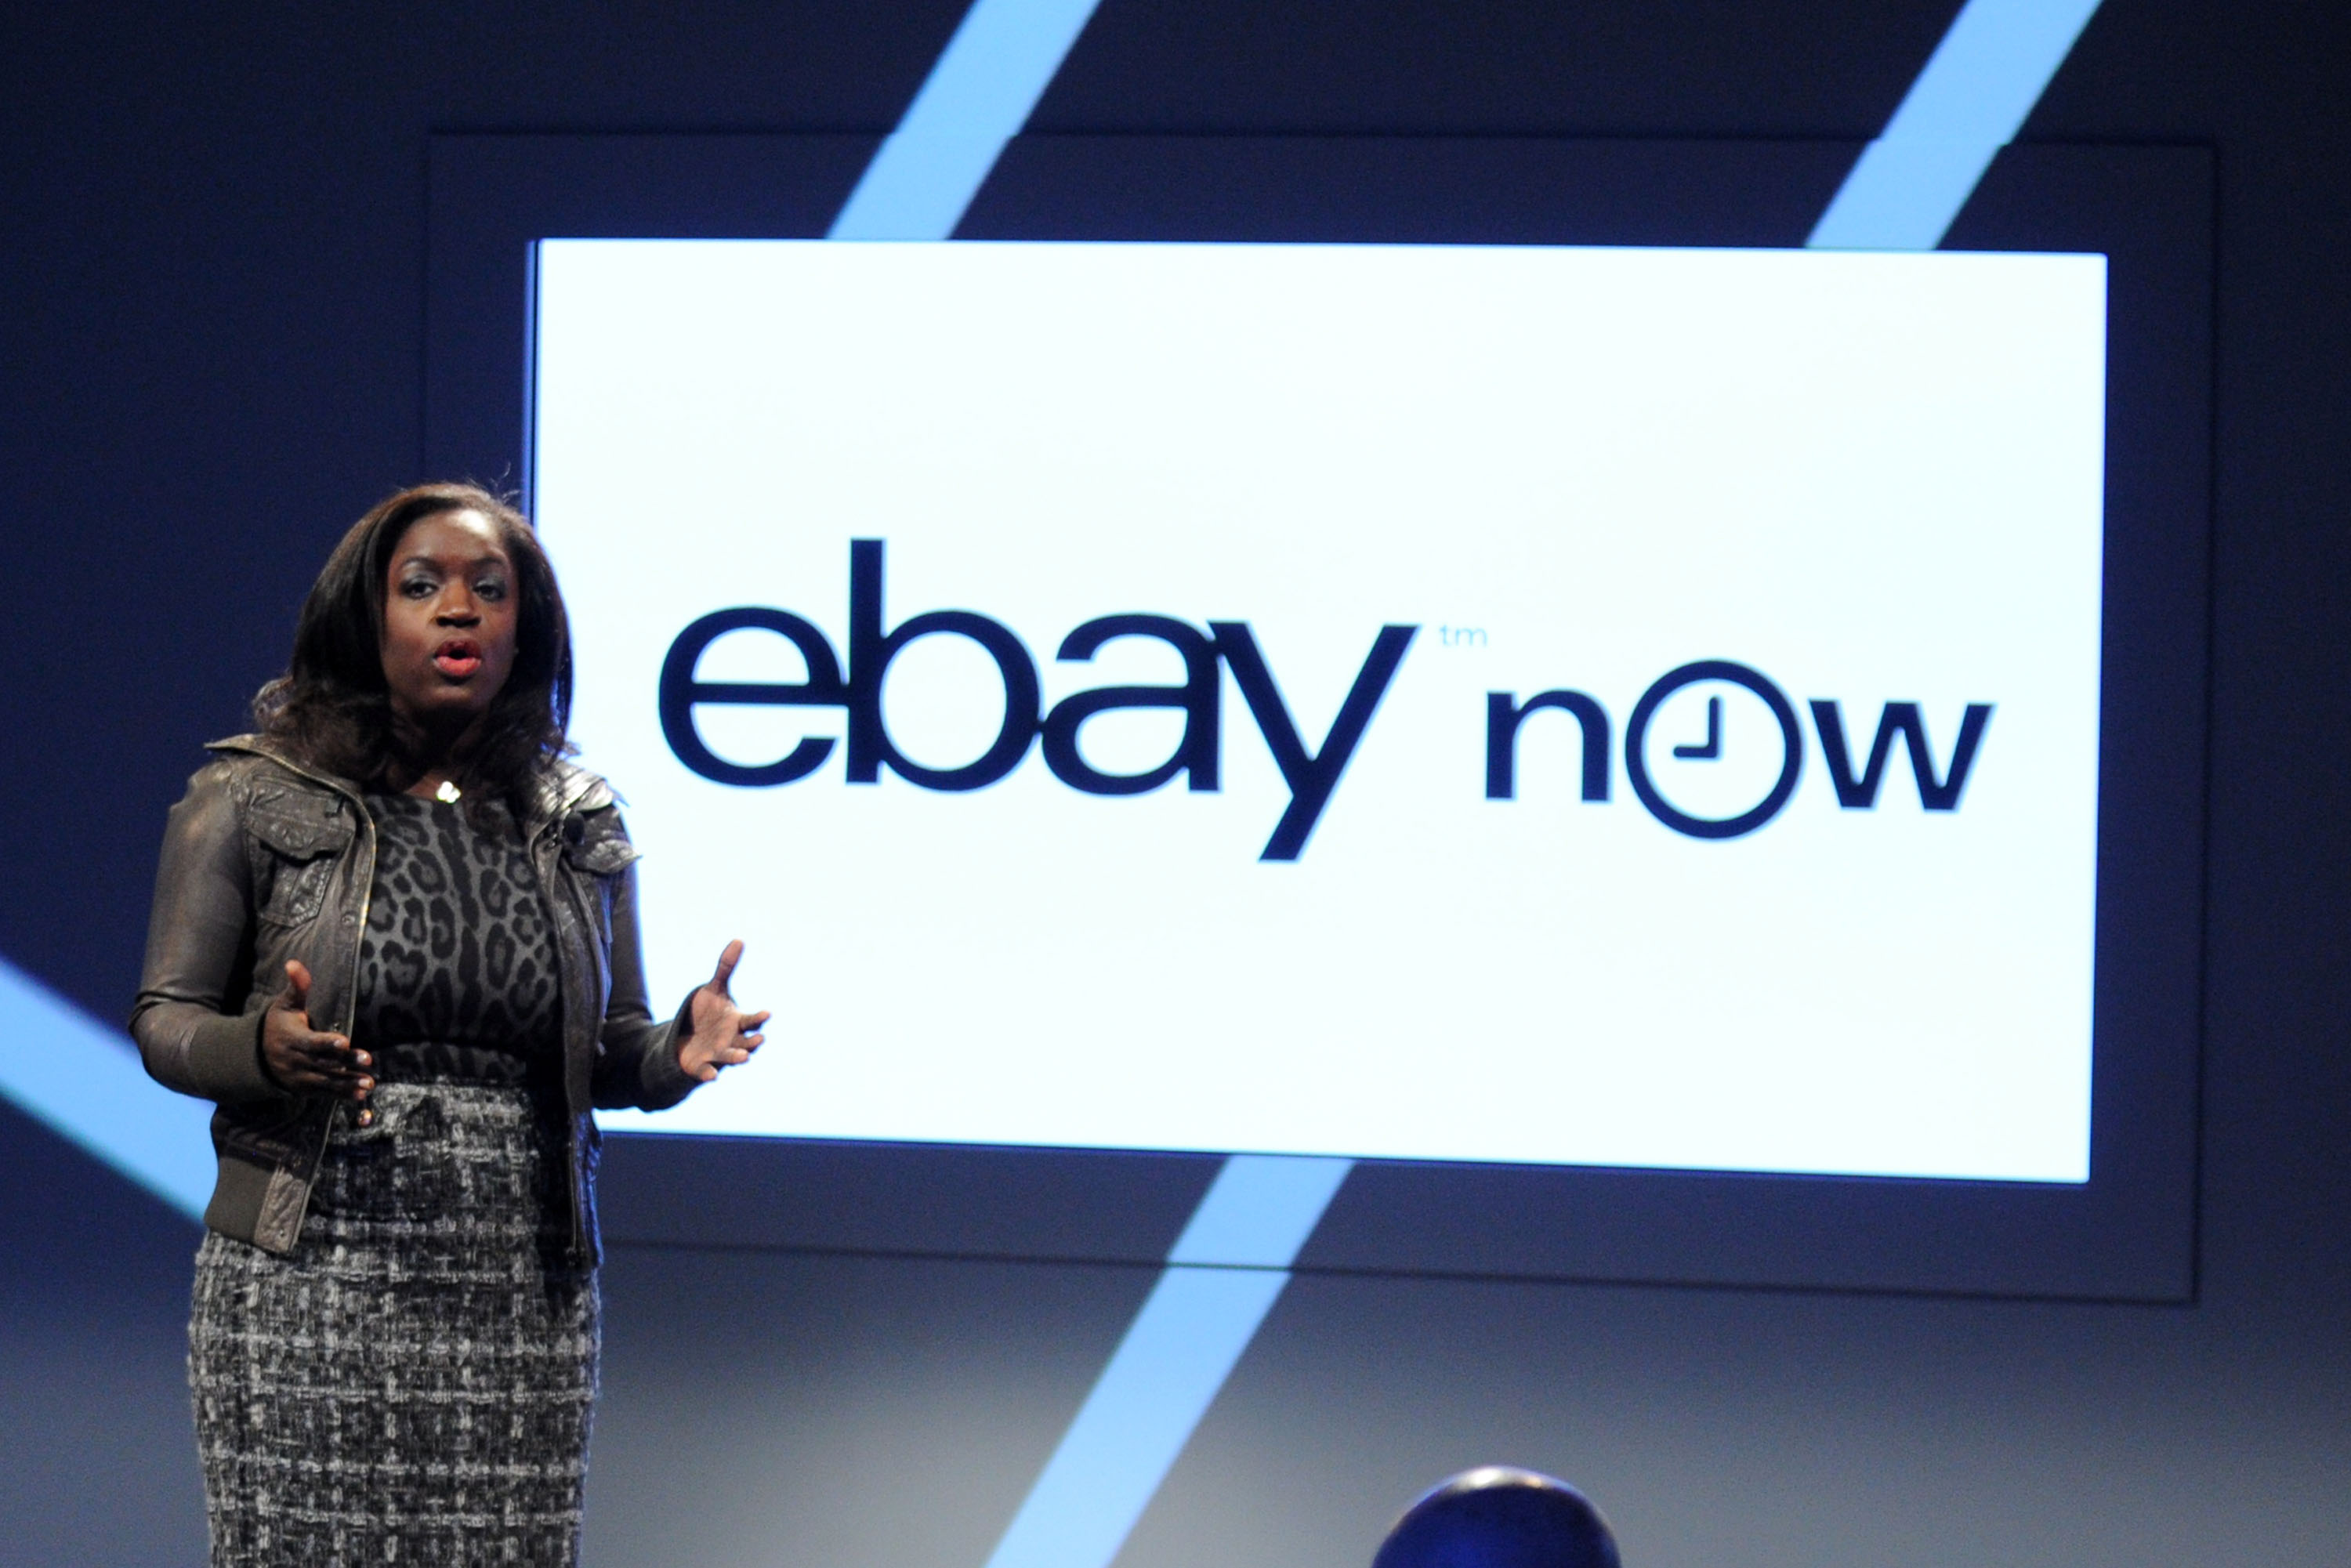 New Logo, New Features, New Look For eBay Deliver More Intuitive, Personalized Shopping Experience